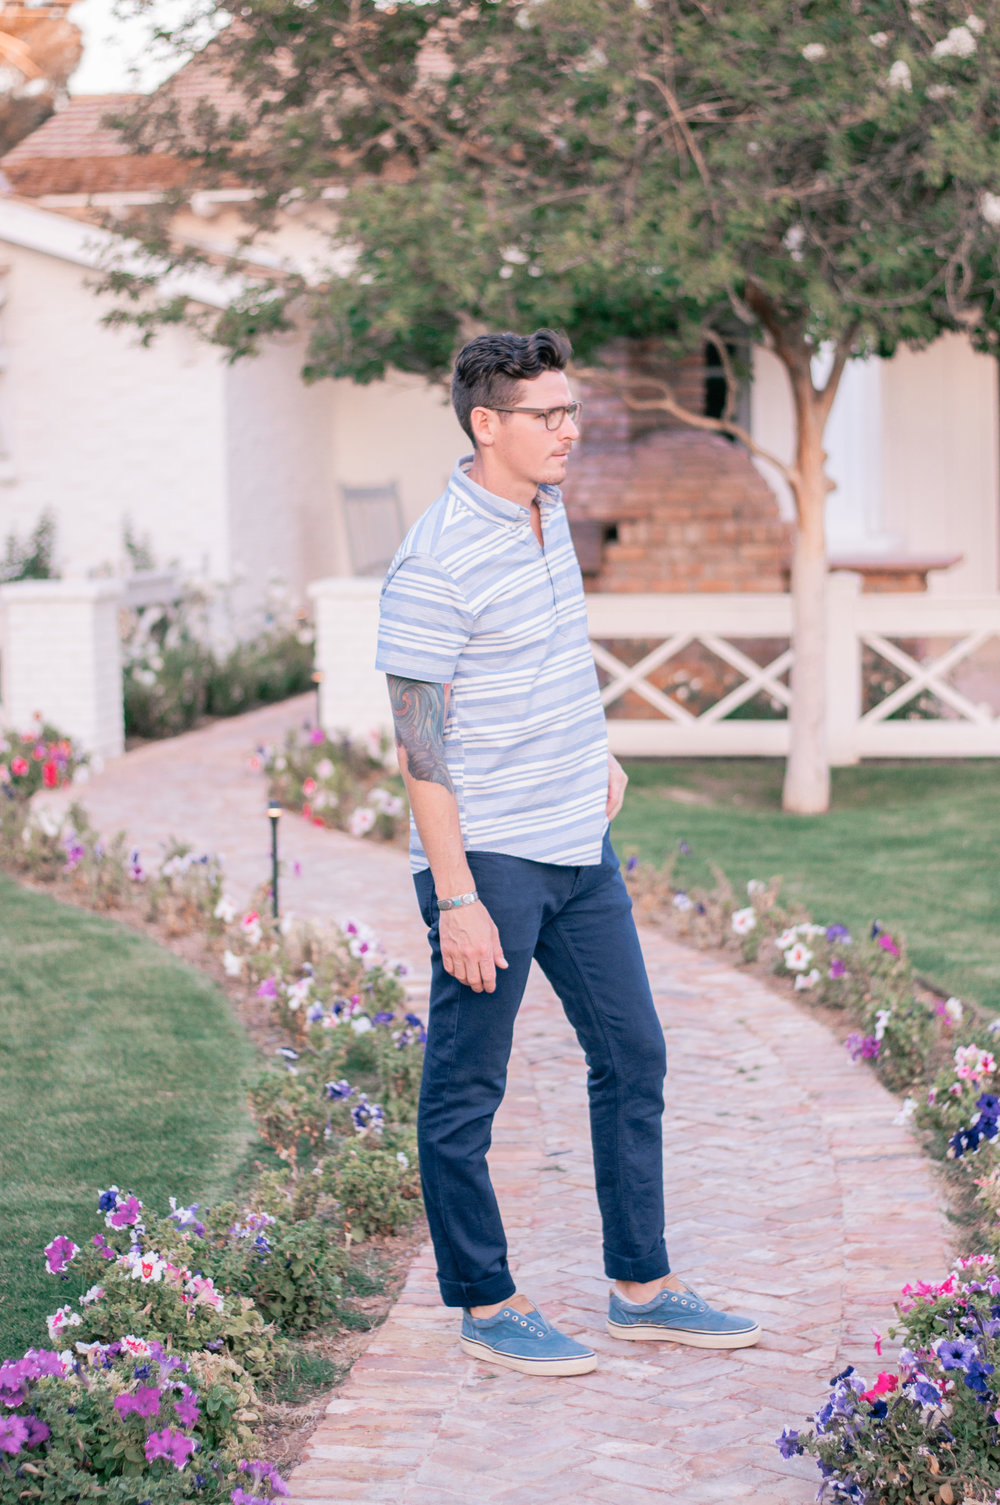 mens-casual-outfit-with-sneakers-for-summer-4.jpg